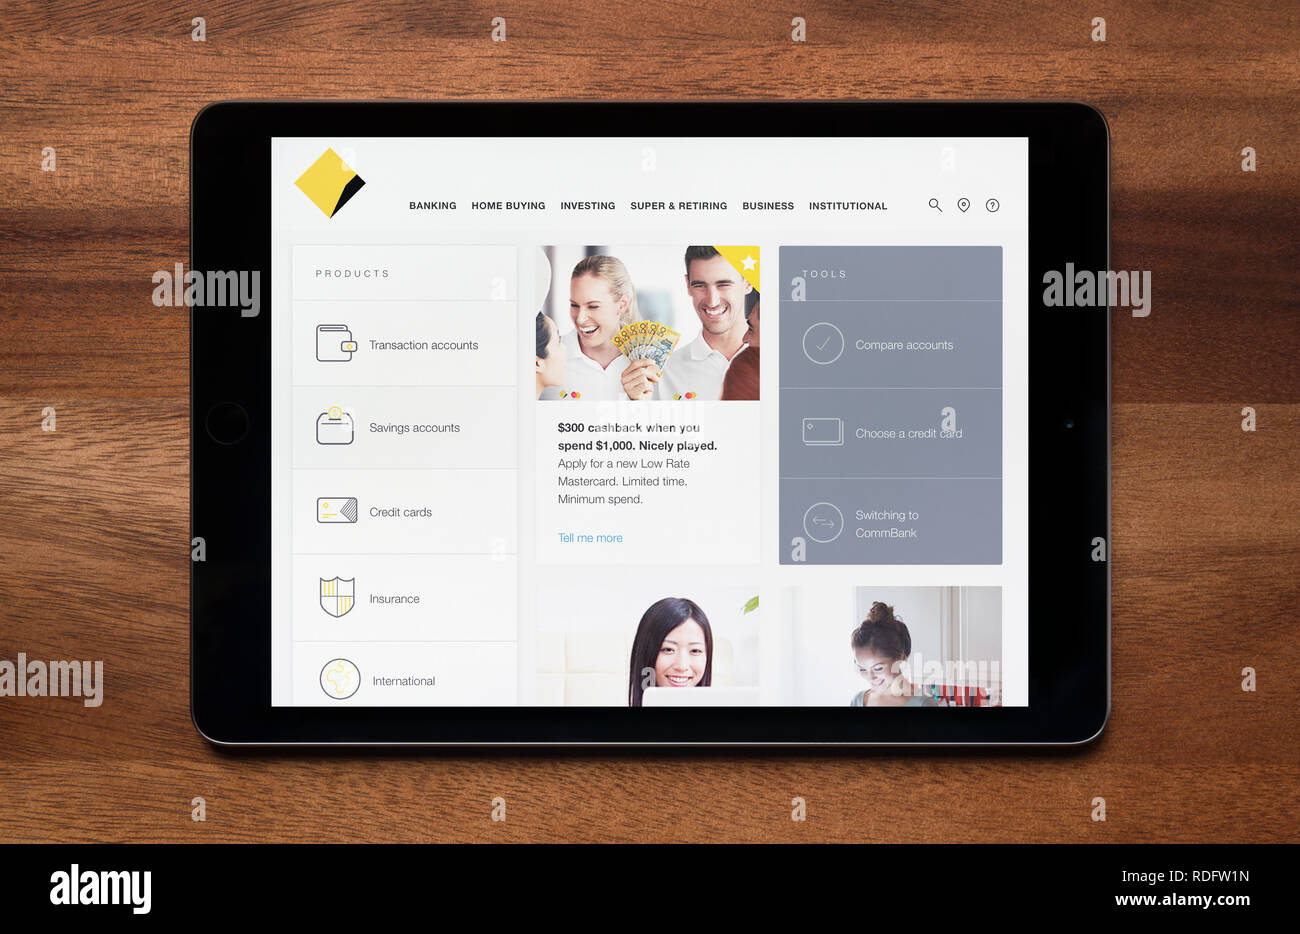 The website of Commonwealth Bank is seen on an iPad tablet, which is resting on a wooden table (Editorial use only). - Stock Image